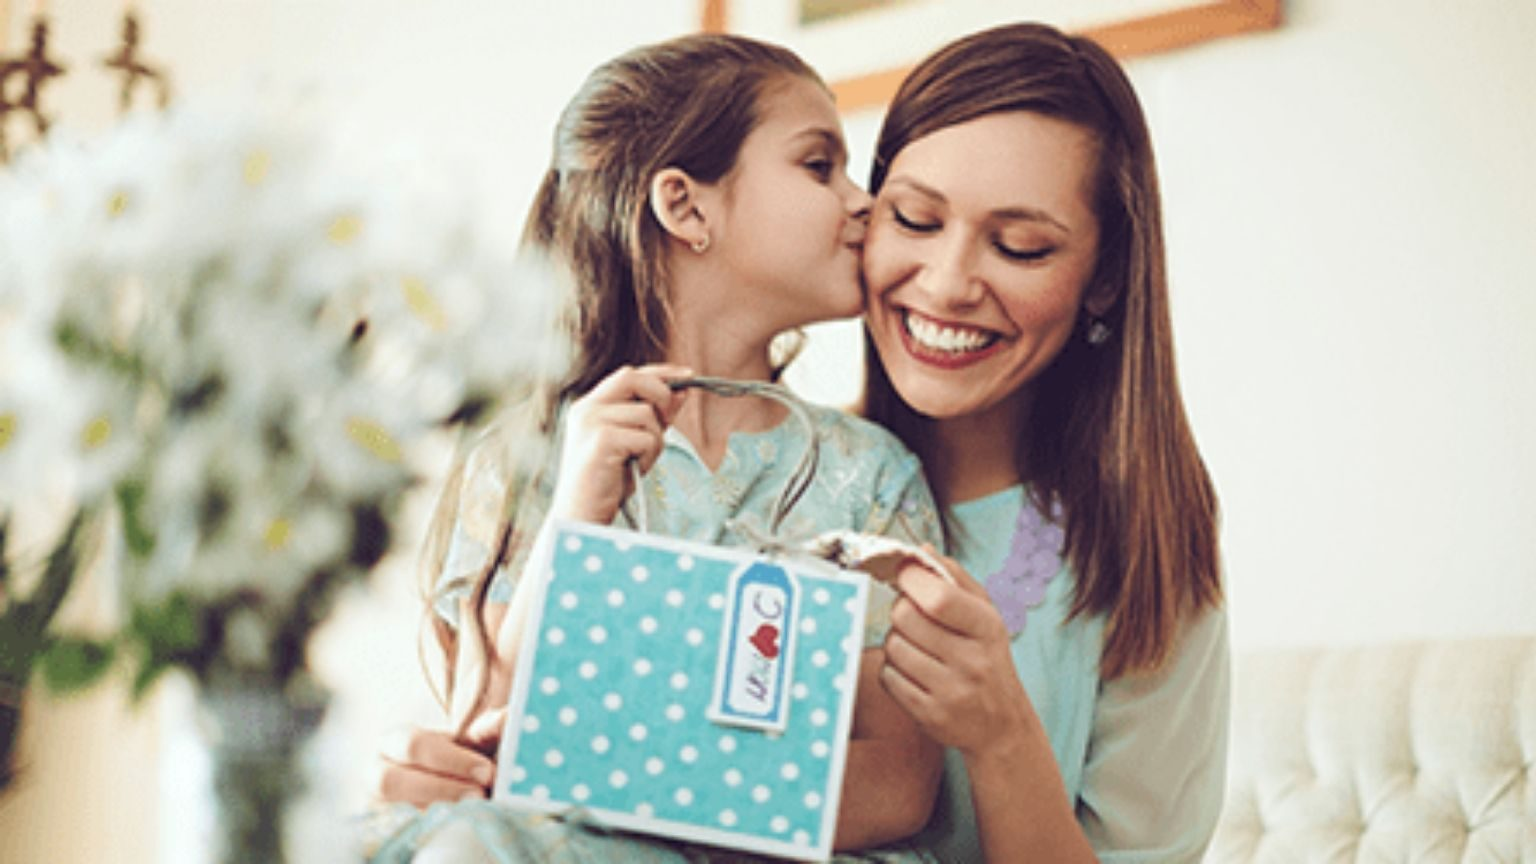 Daughter giving her mom a gift